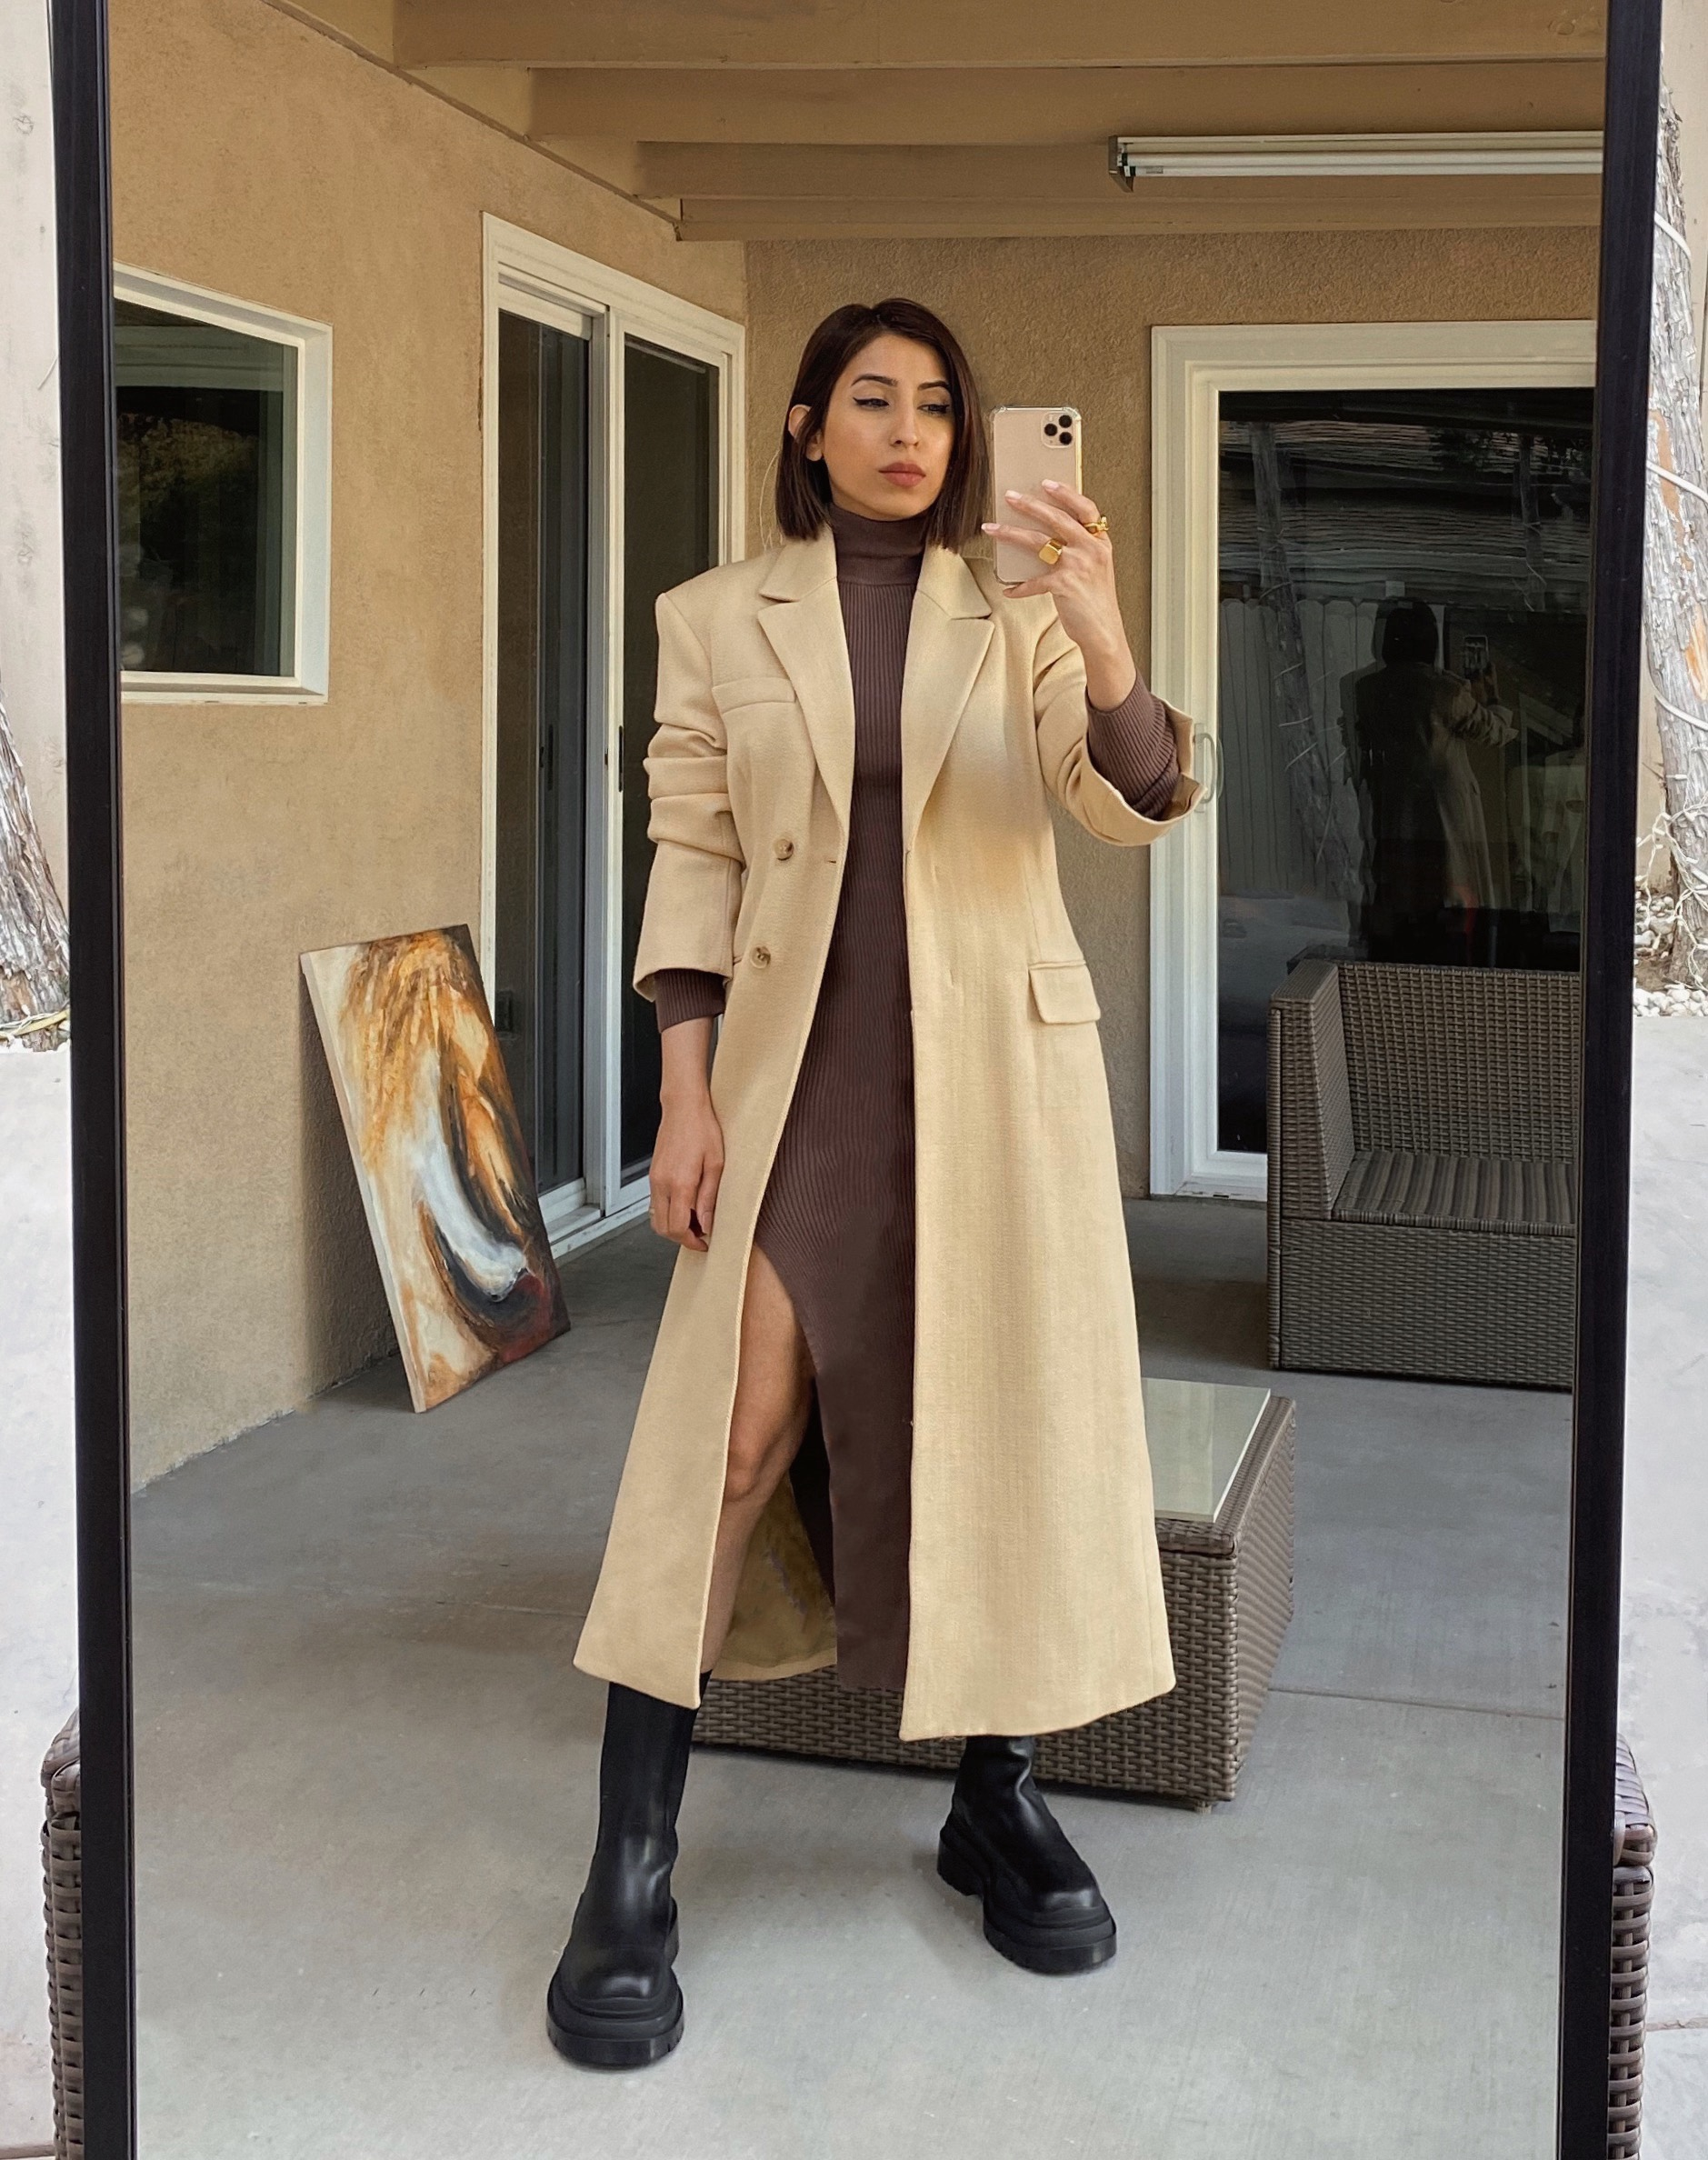 Winter Dresses That Will Make Your Wardrobe Chic And Comfy